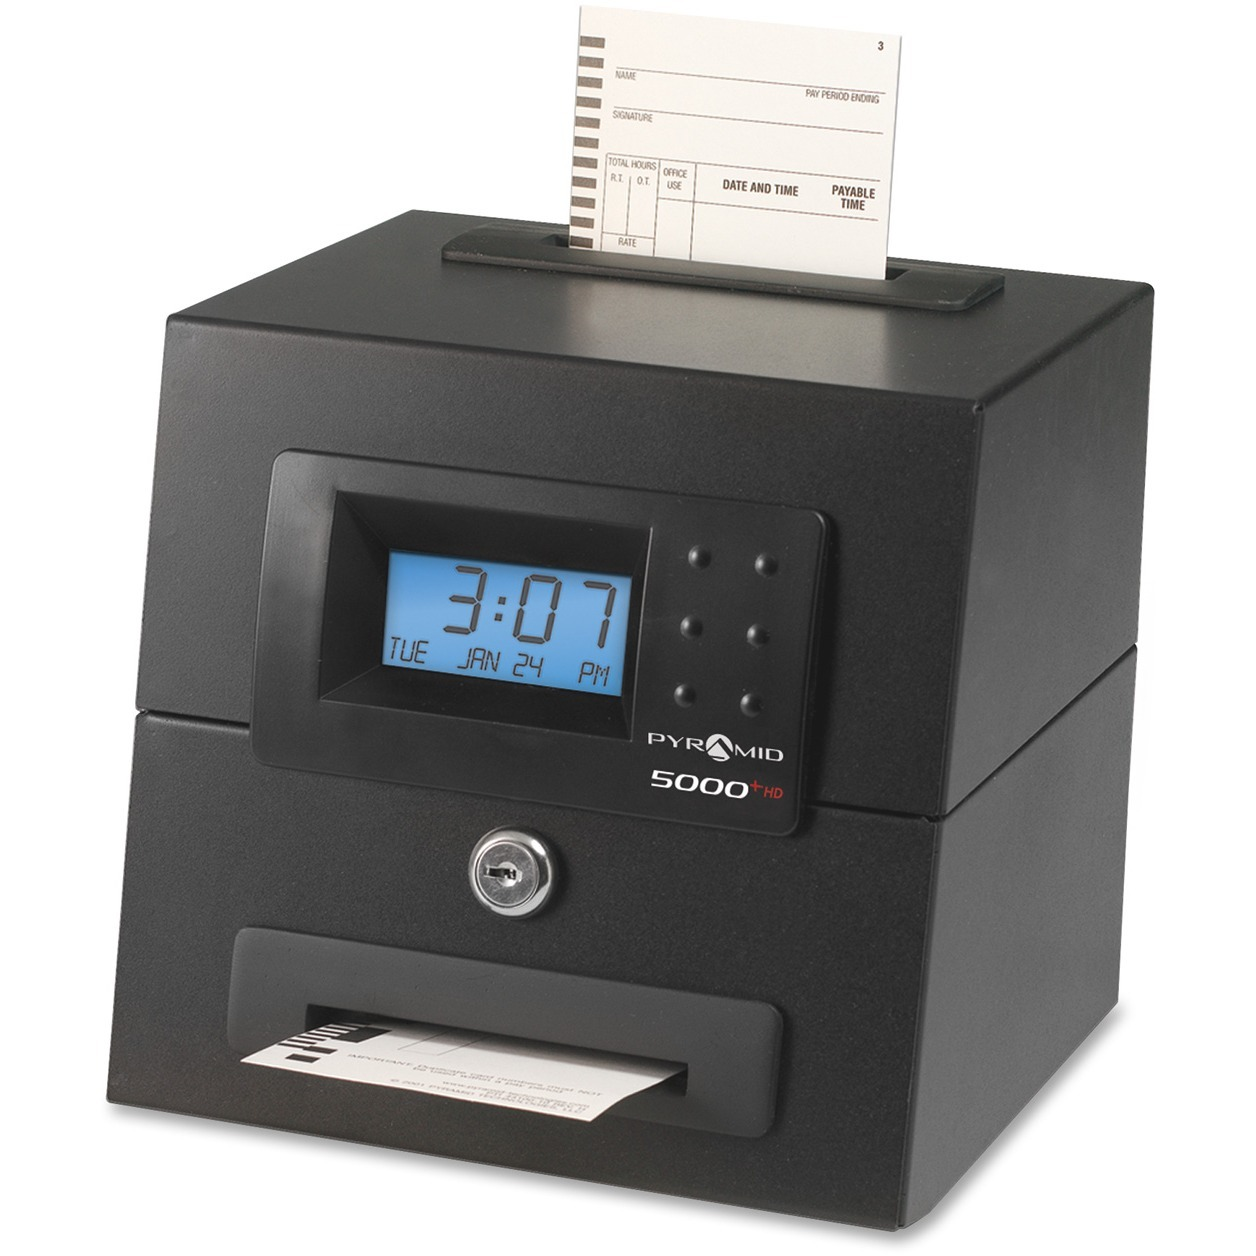 Pyramid Time Systems, PTI5000HD, 5000 Heavy Duty Auto Totaling Time Clock, 1 Each, Black by Pyramid Time Systems